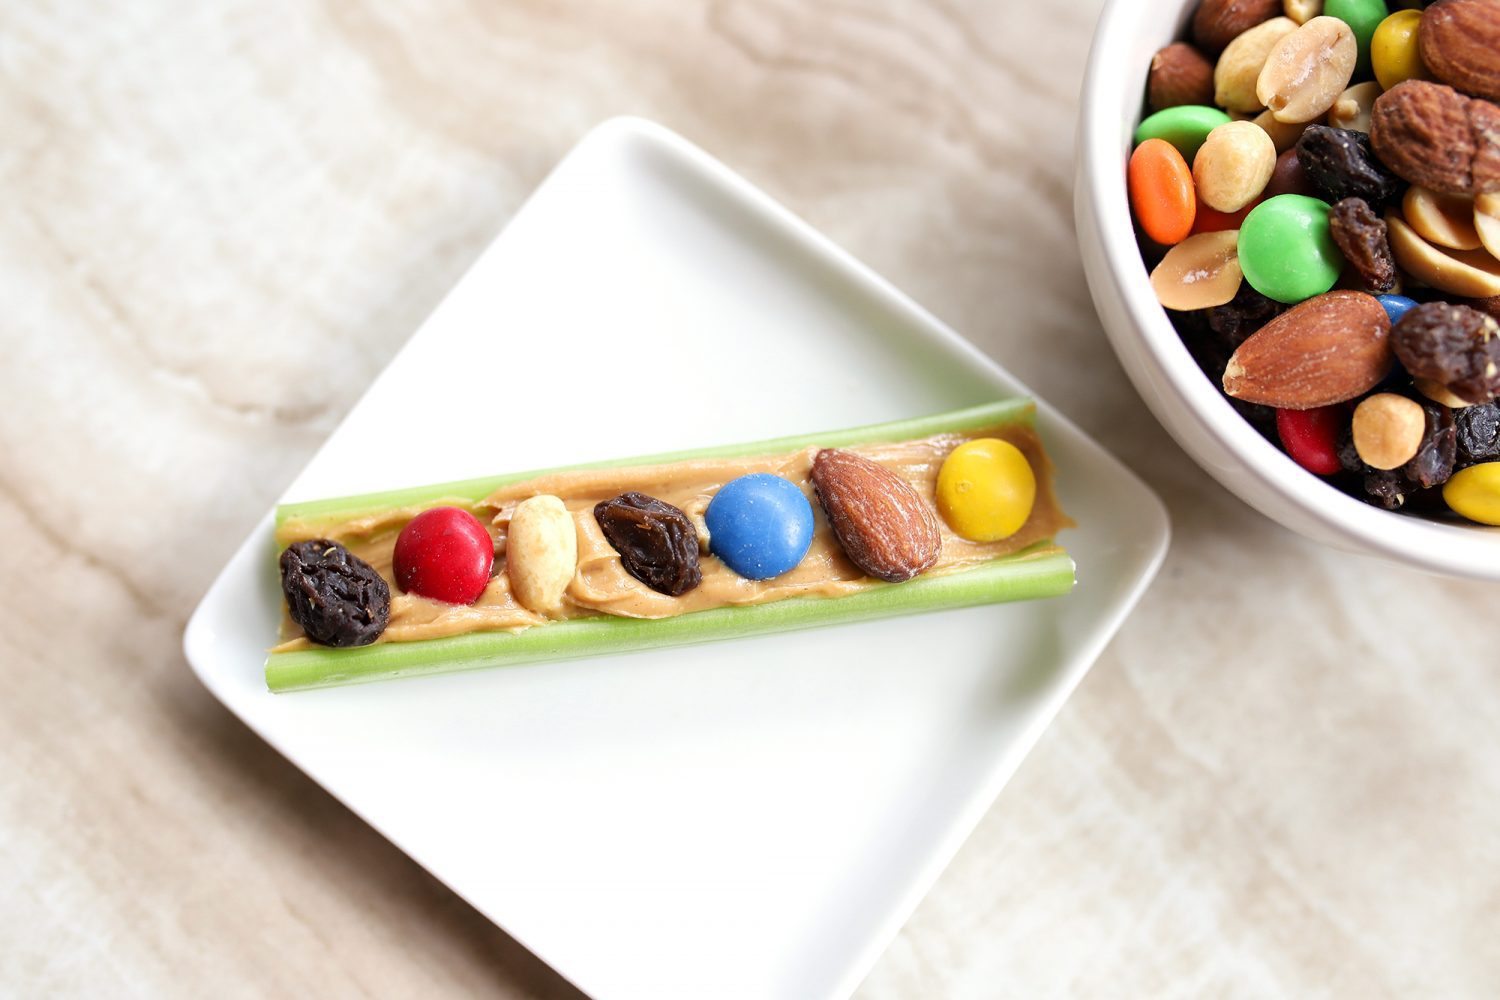 celery topped with peanut butter and trail mix